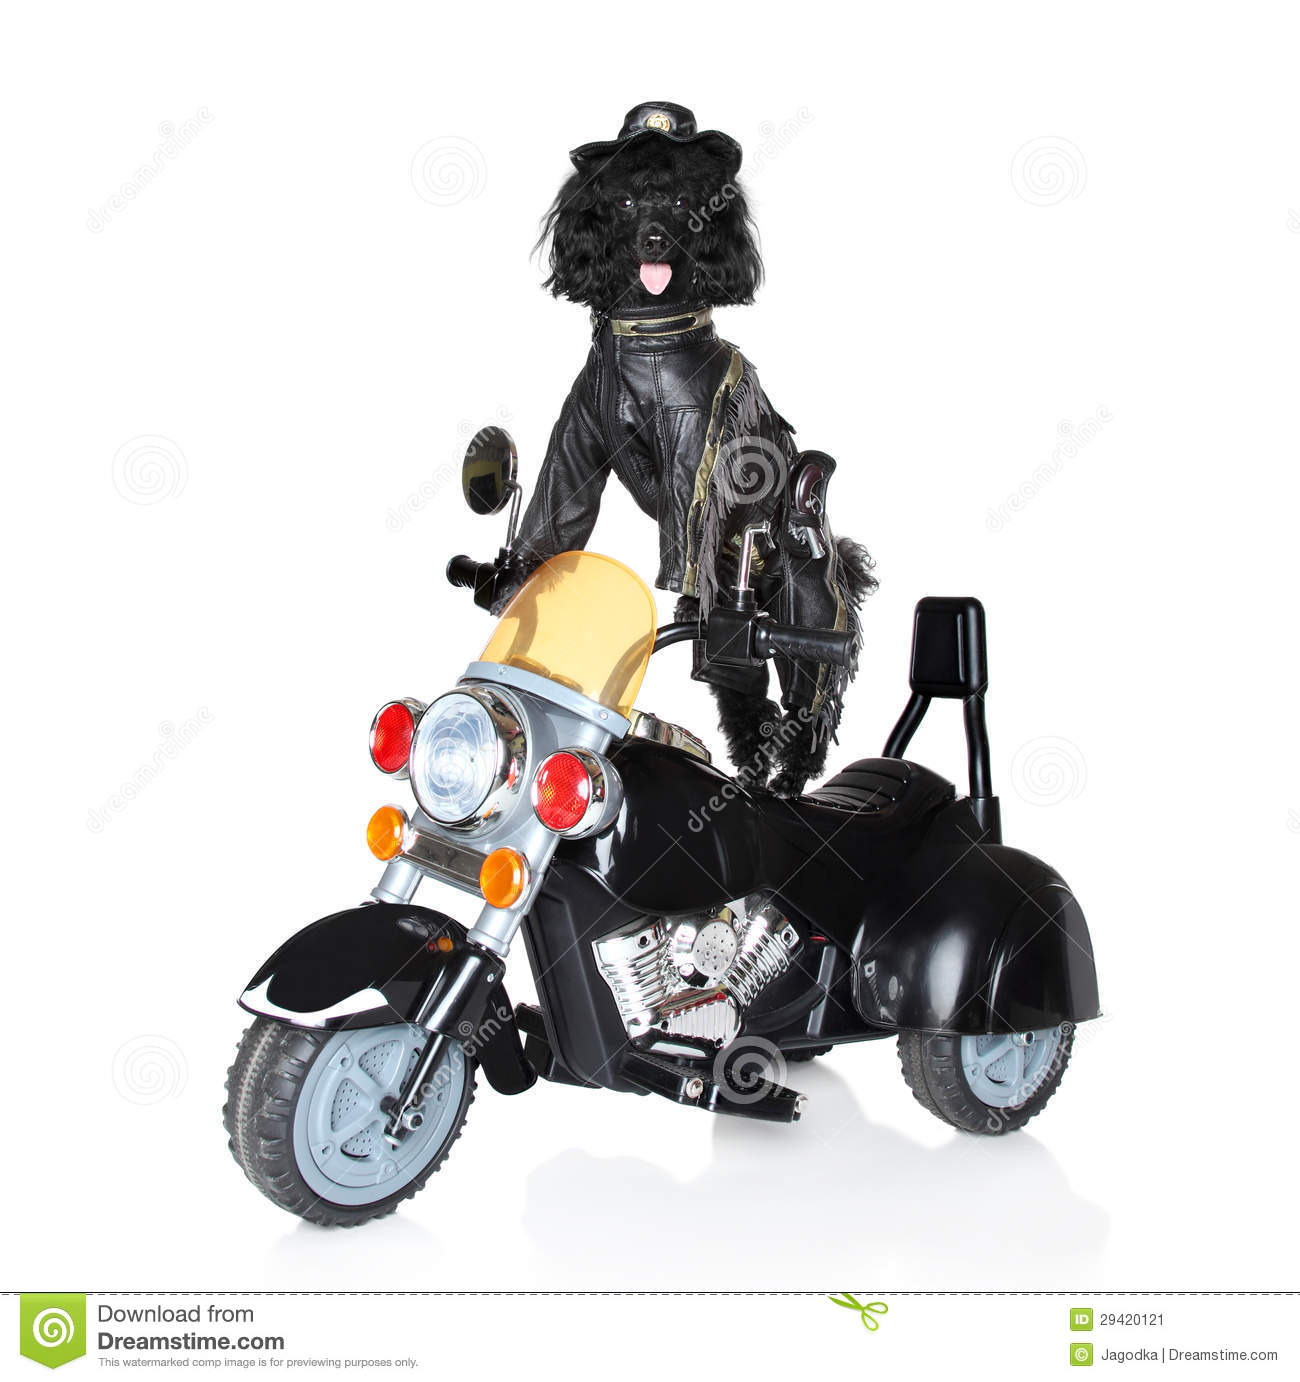 dog riding motorcycle clipart - photo #21